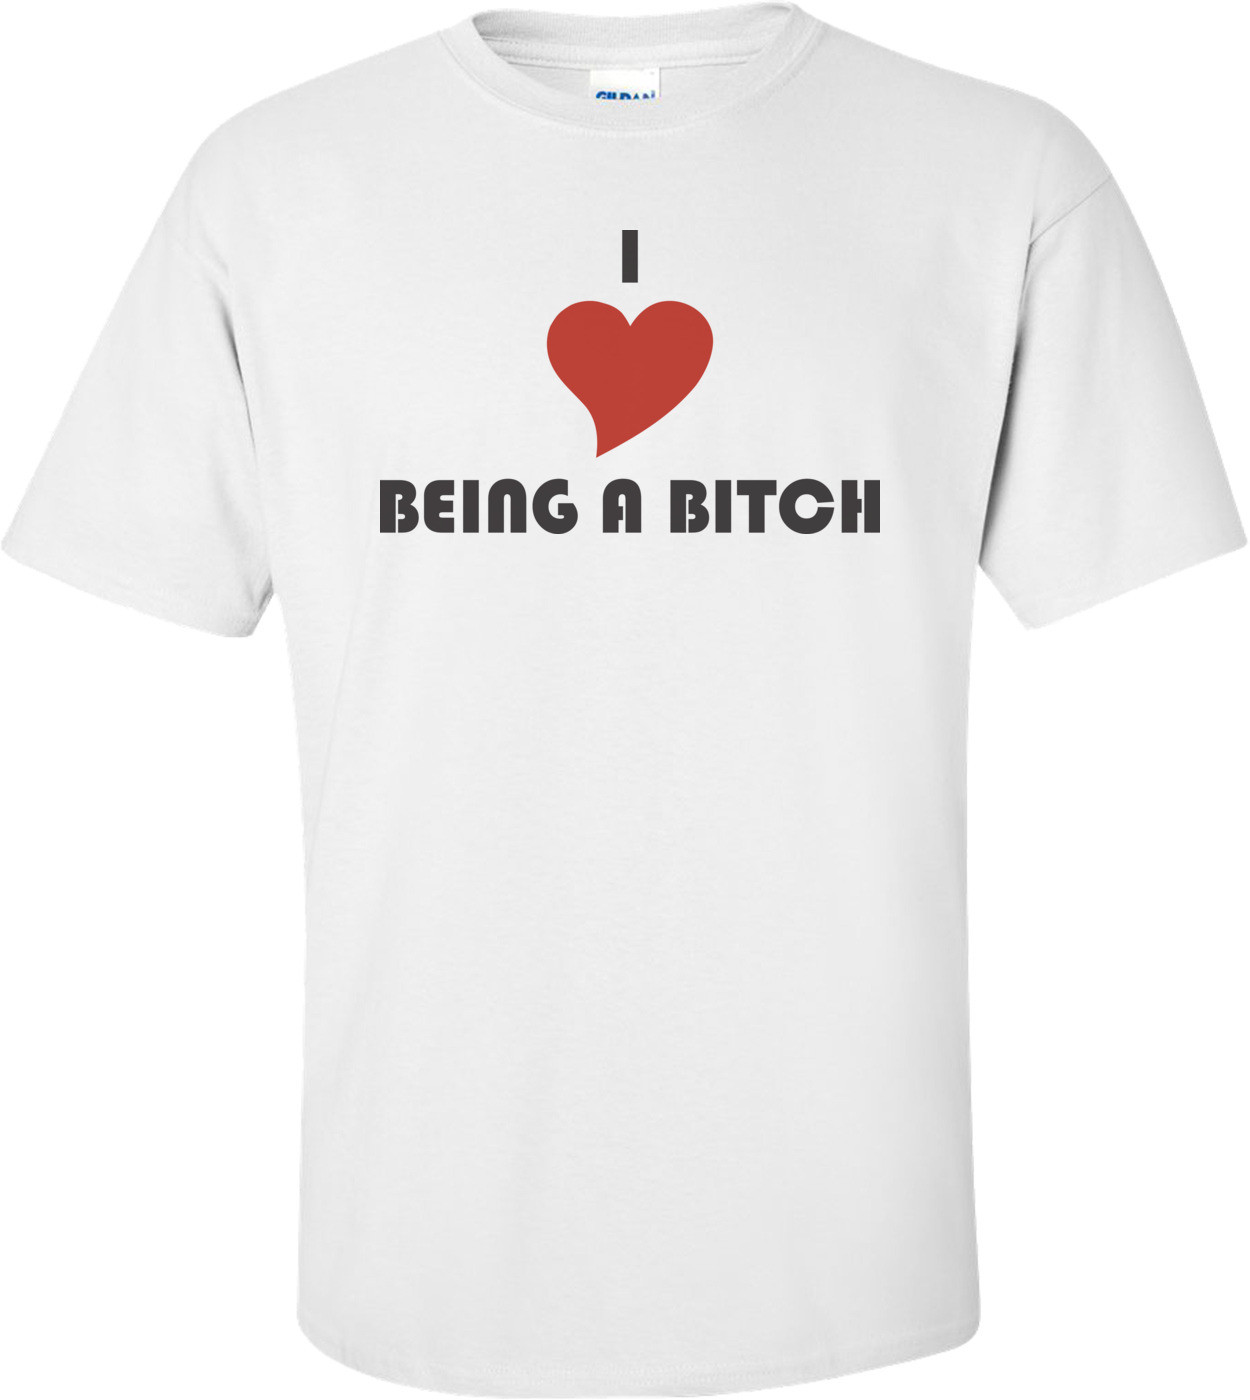 I Love Being A Bitch T-shirt